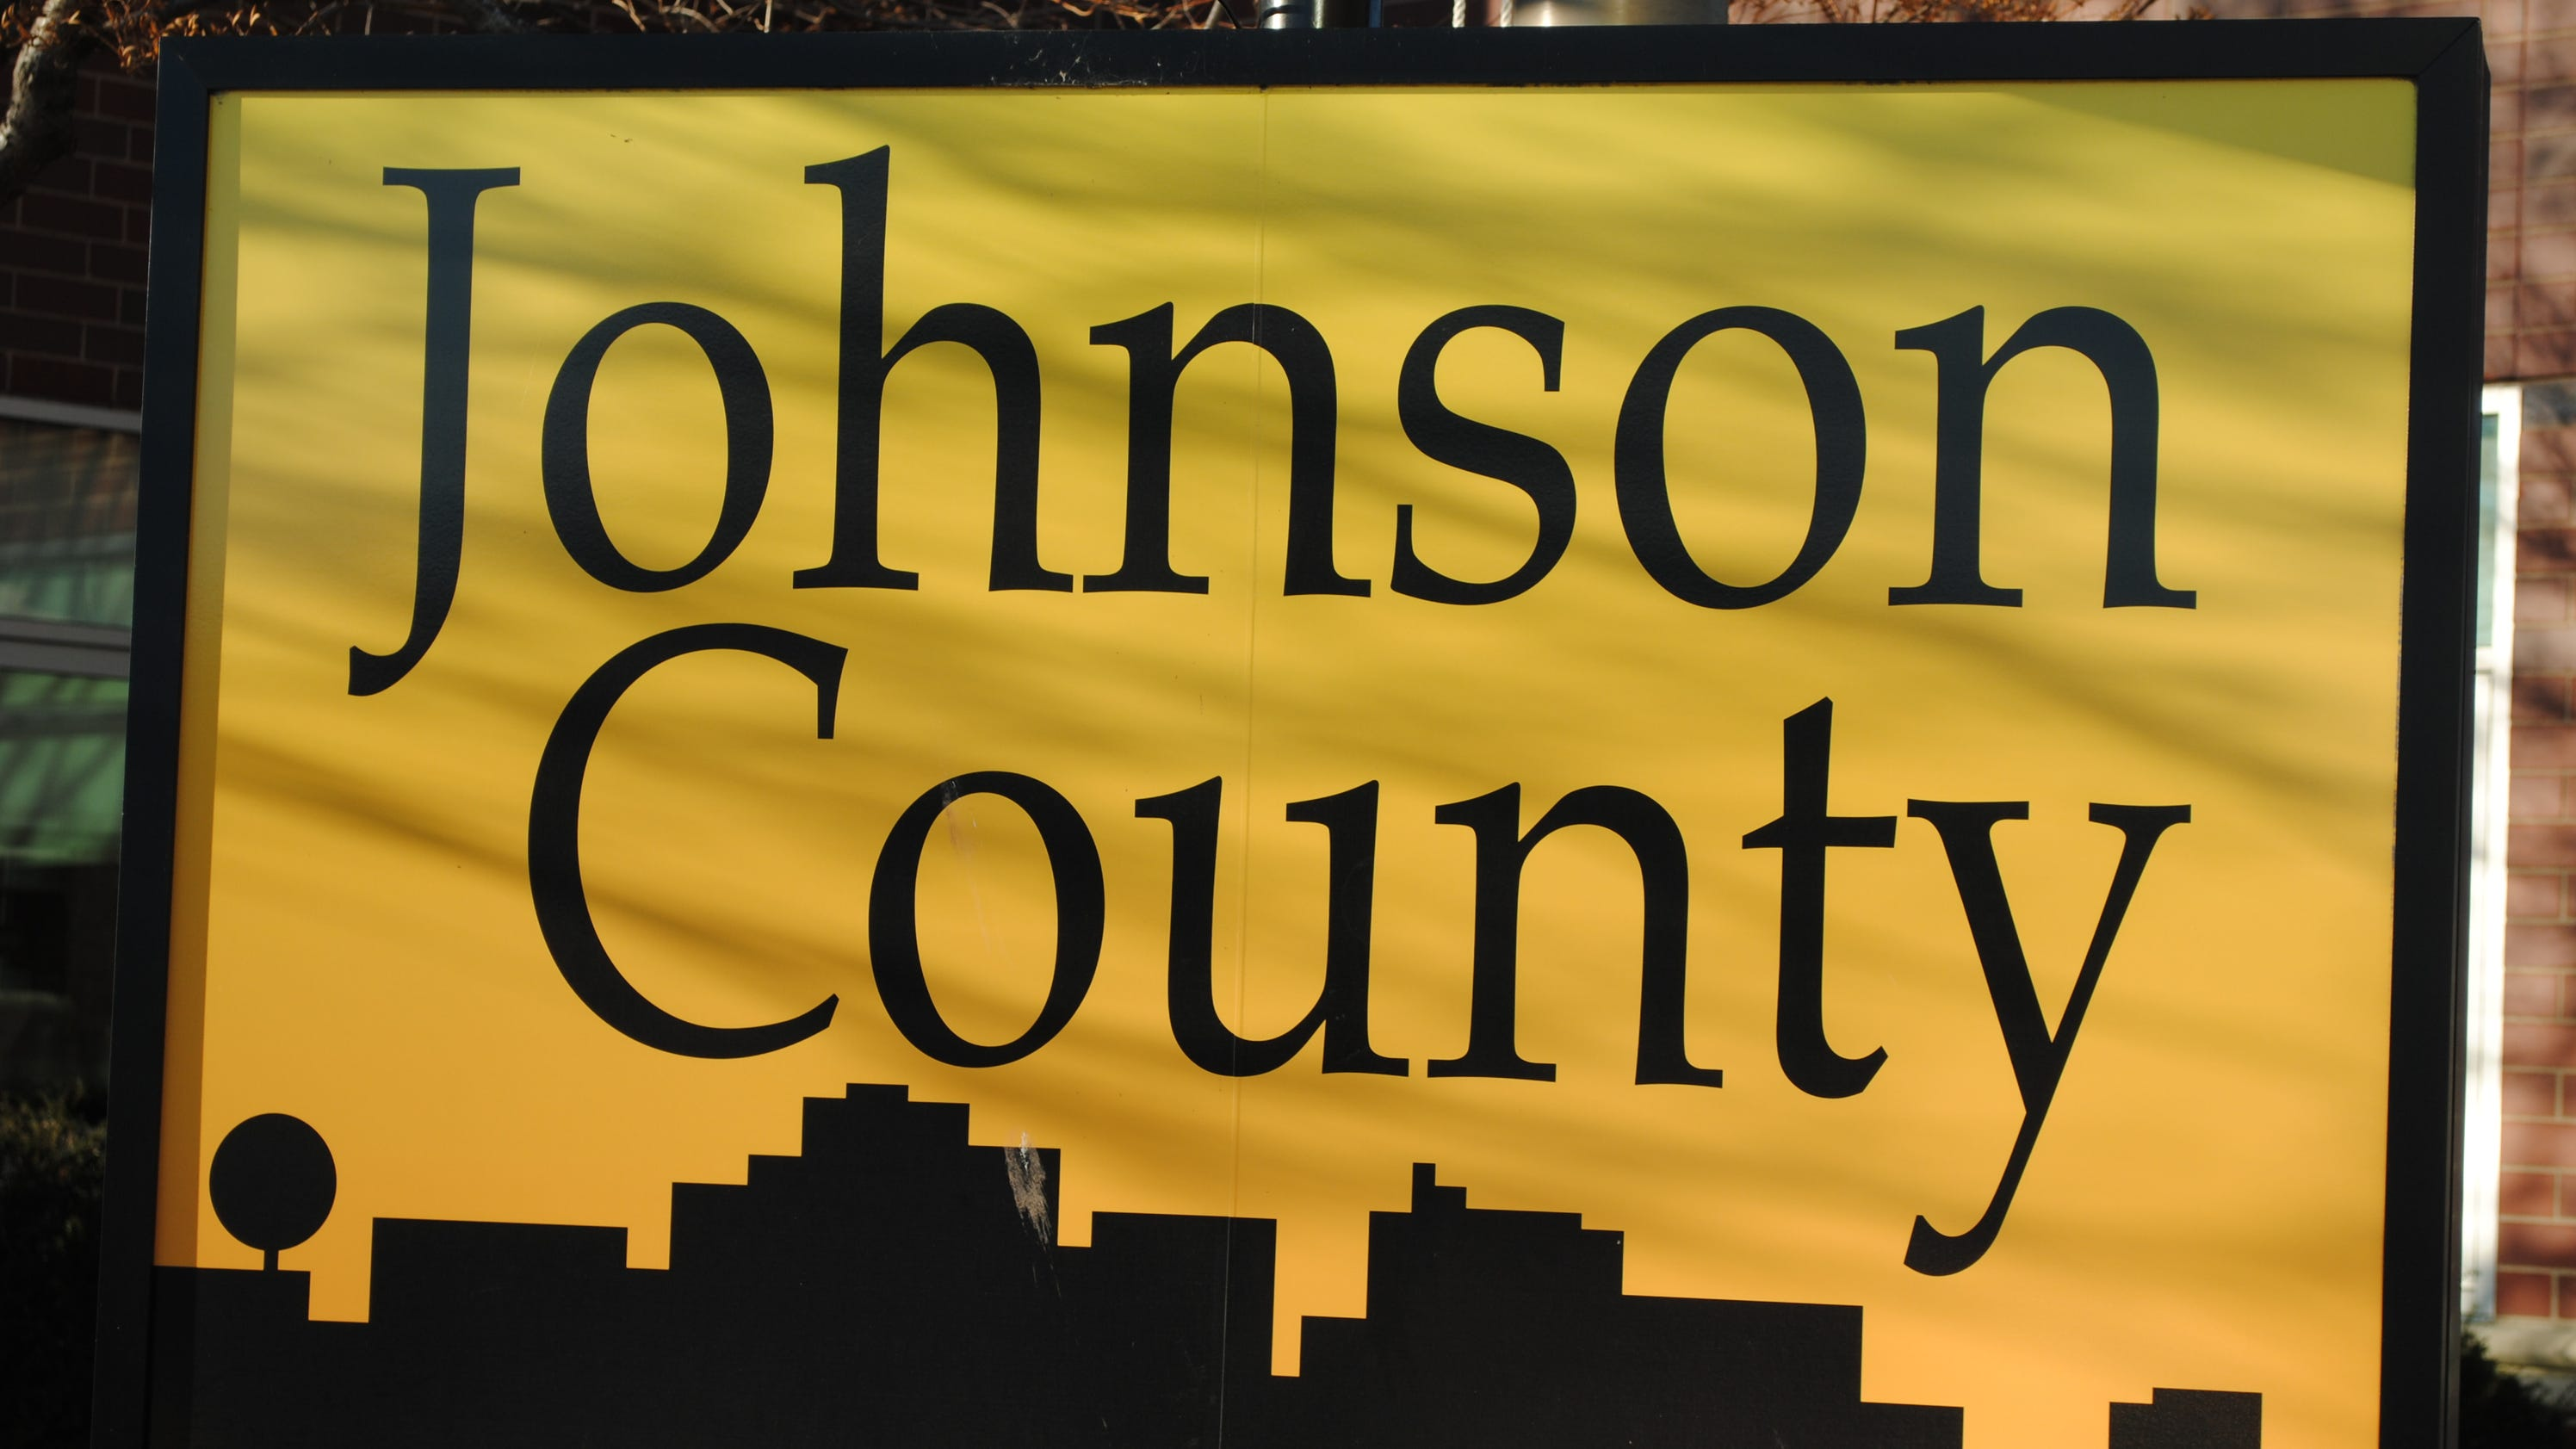 johnson county buddhist single women Dating scene/single women in in johnson county i think the best ways to meet women in any city there might be more single women but there.